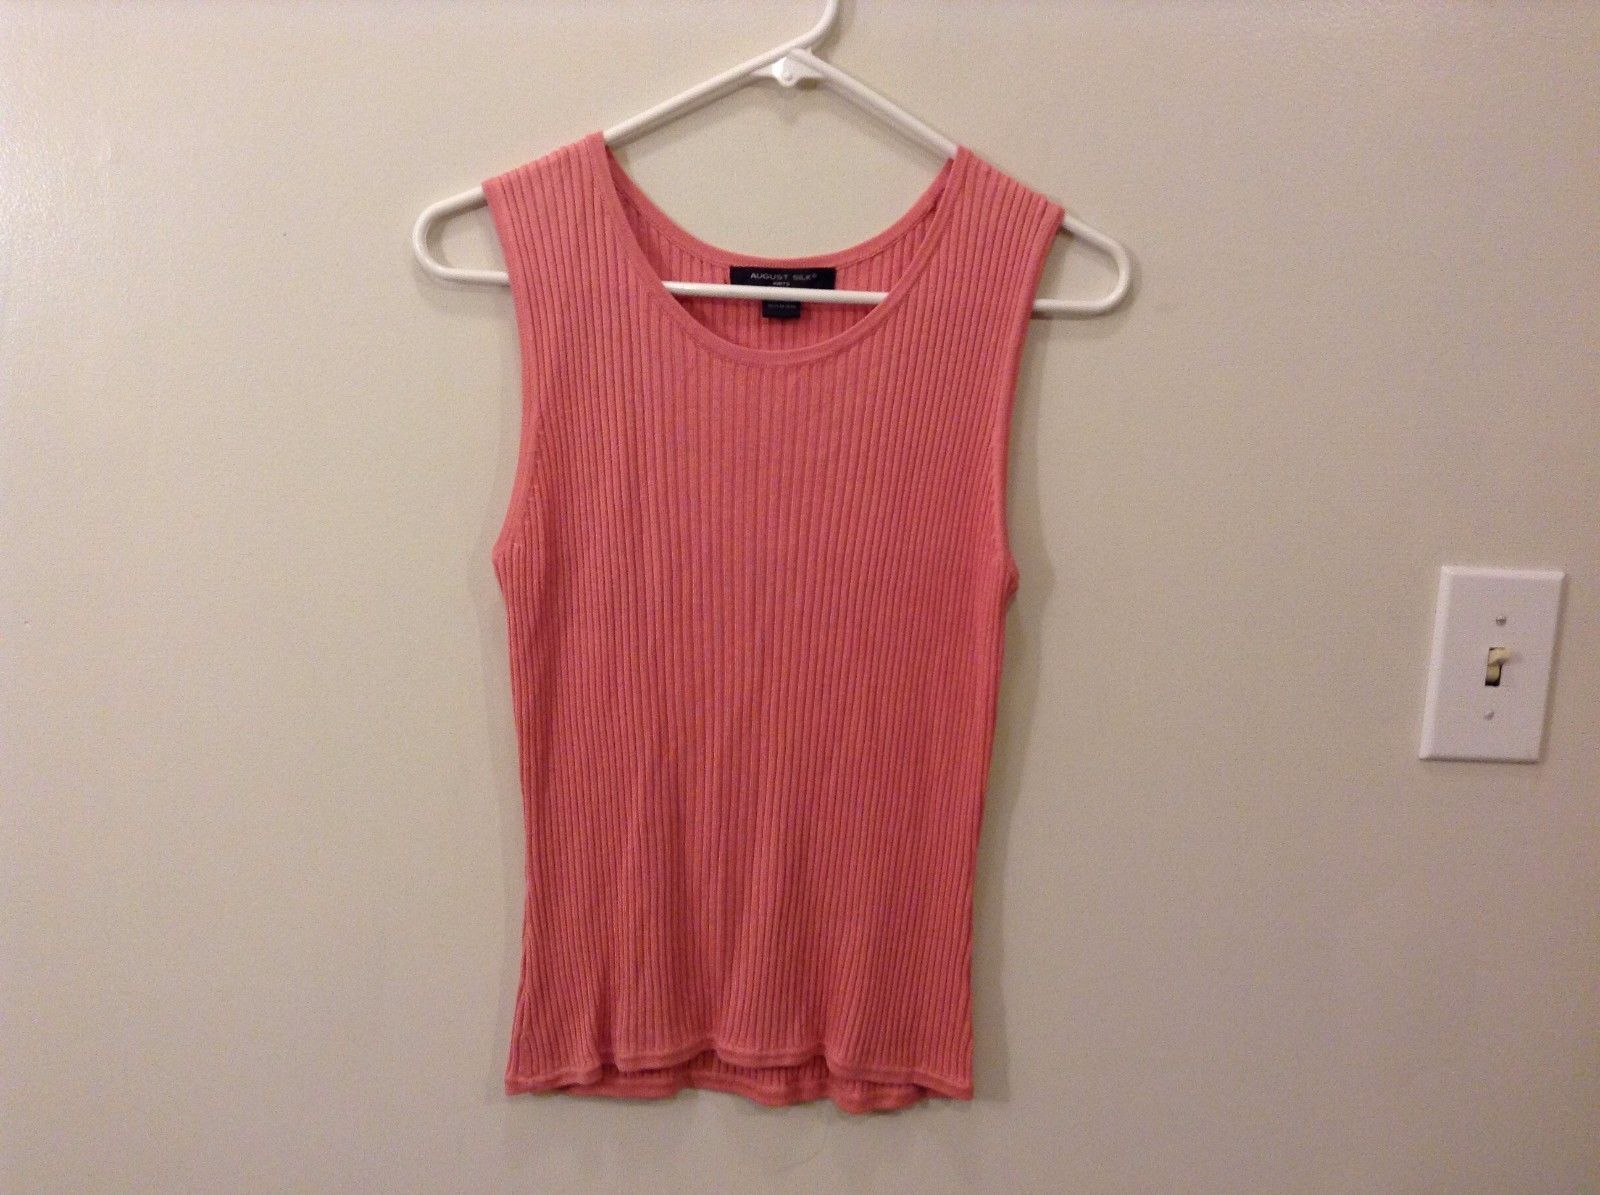 August Silk M Pink Knit Tank Top Flexible Material Great Condition